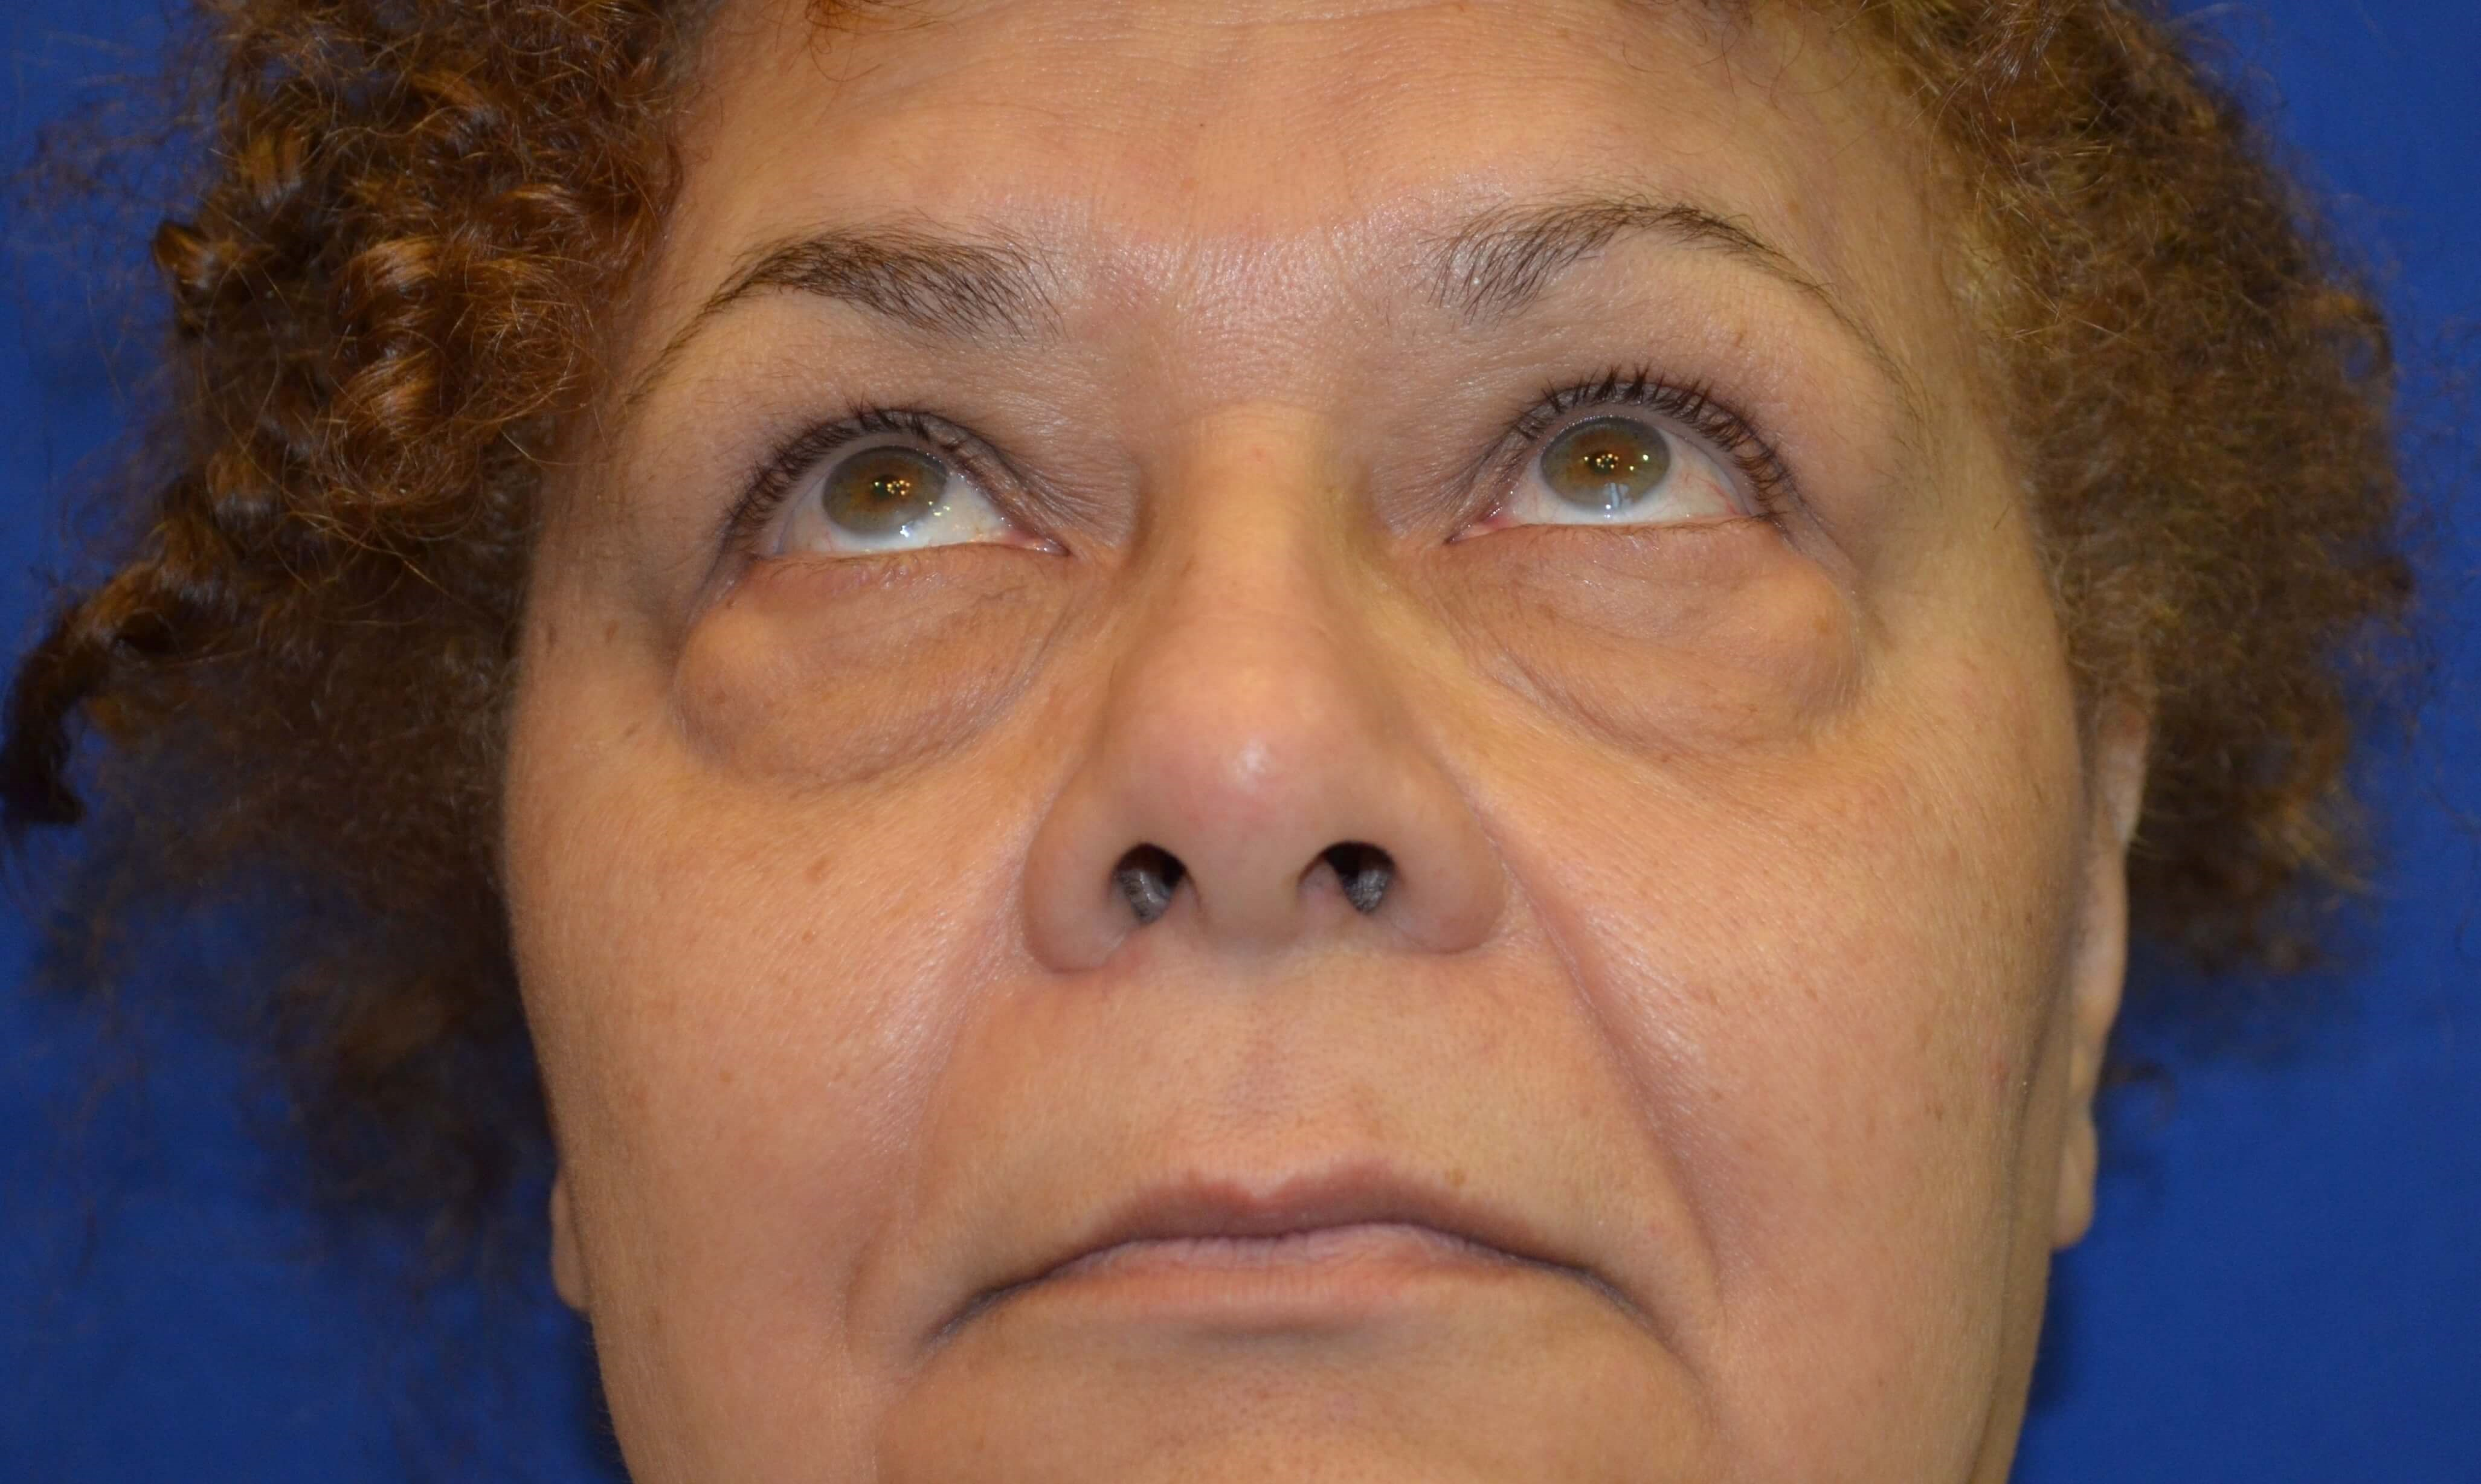 Lower Eyelid Procedure Before